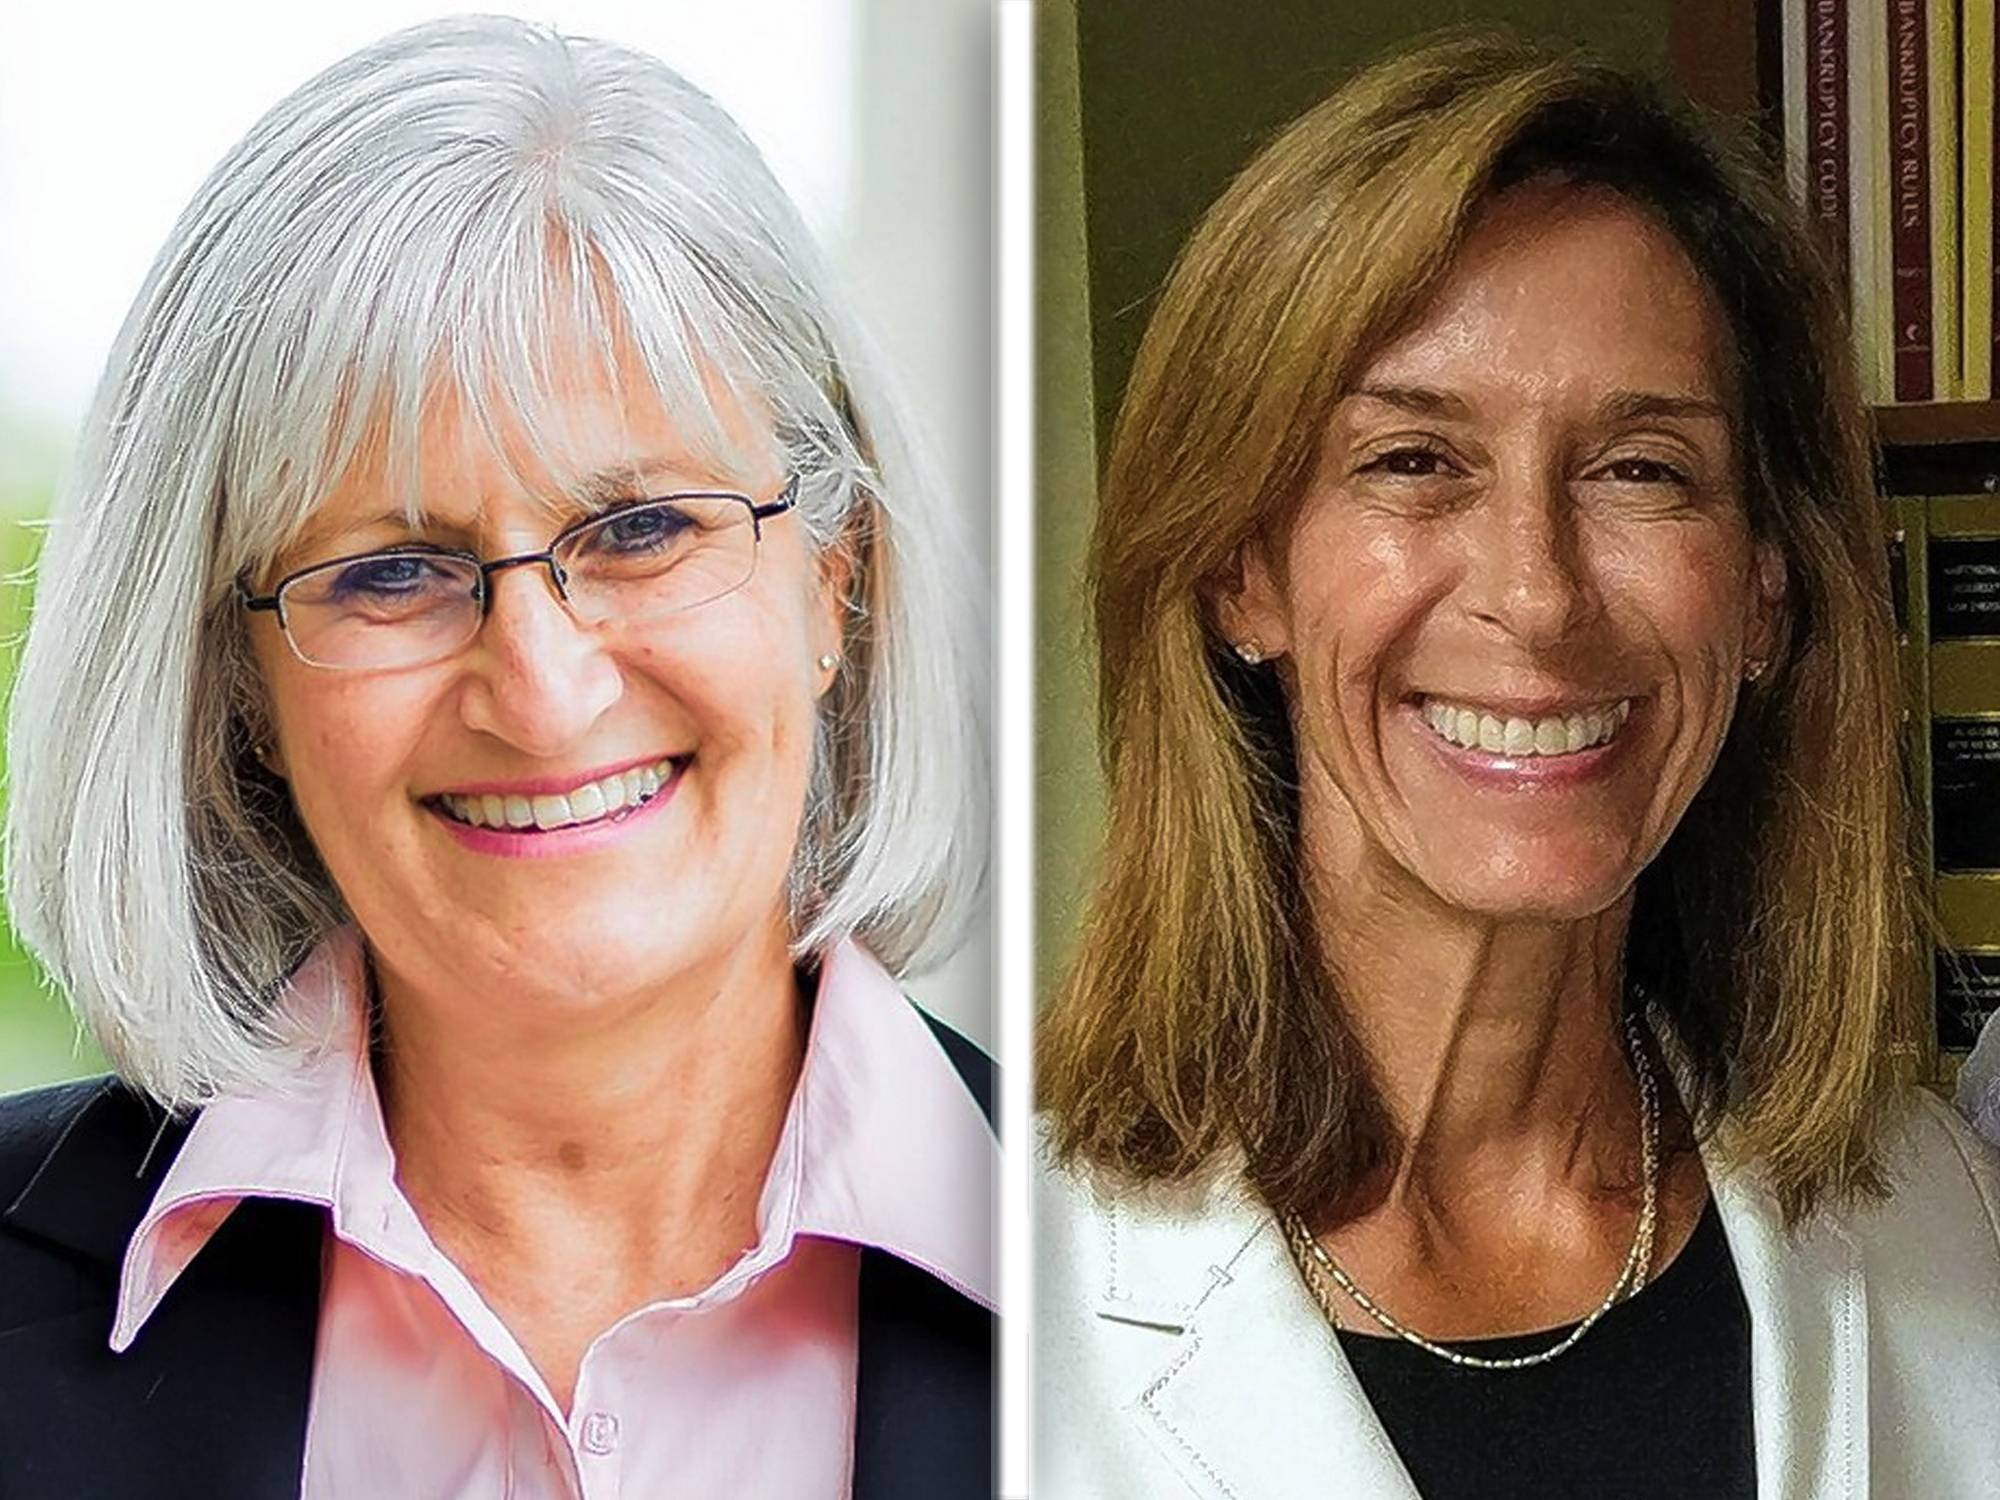 Democrat Mary Edly-Allen, left, trails Republican state Rep. Helene Miller Walsh by one vote in the 51st House District election. The district includes all or portions of the Barrington area, Lake Zurich, Long Grove, Libertyville and Mundelein.